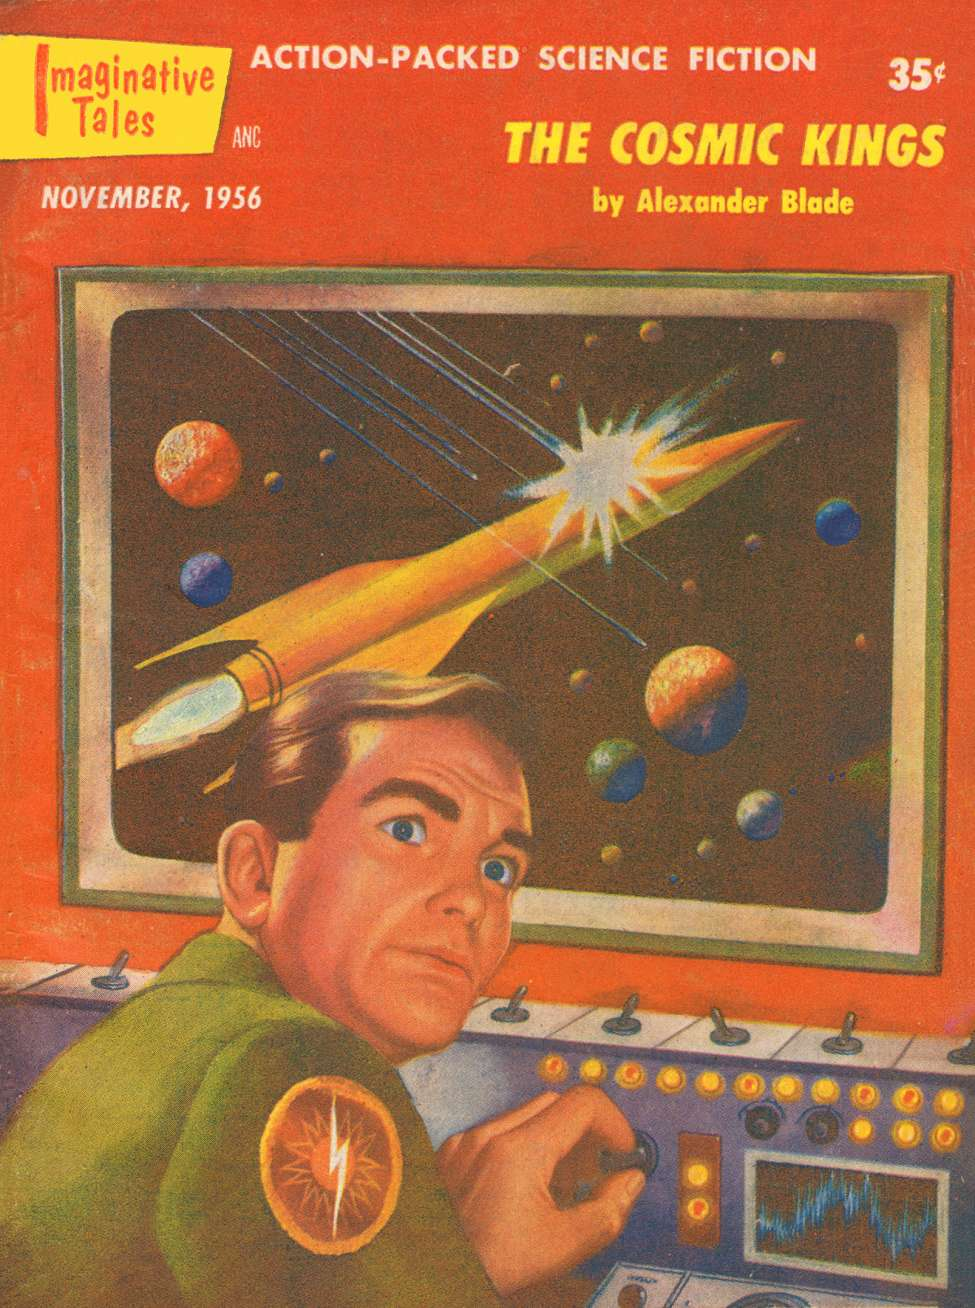 Comic Book Cover For Imaginative Tales v03 06 - The Cosmic Kings - Alexander Blade